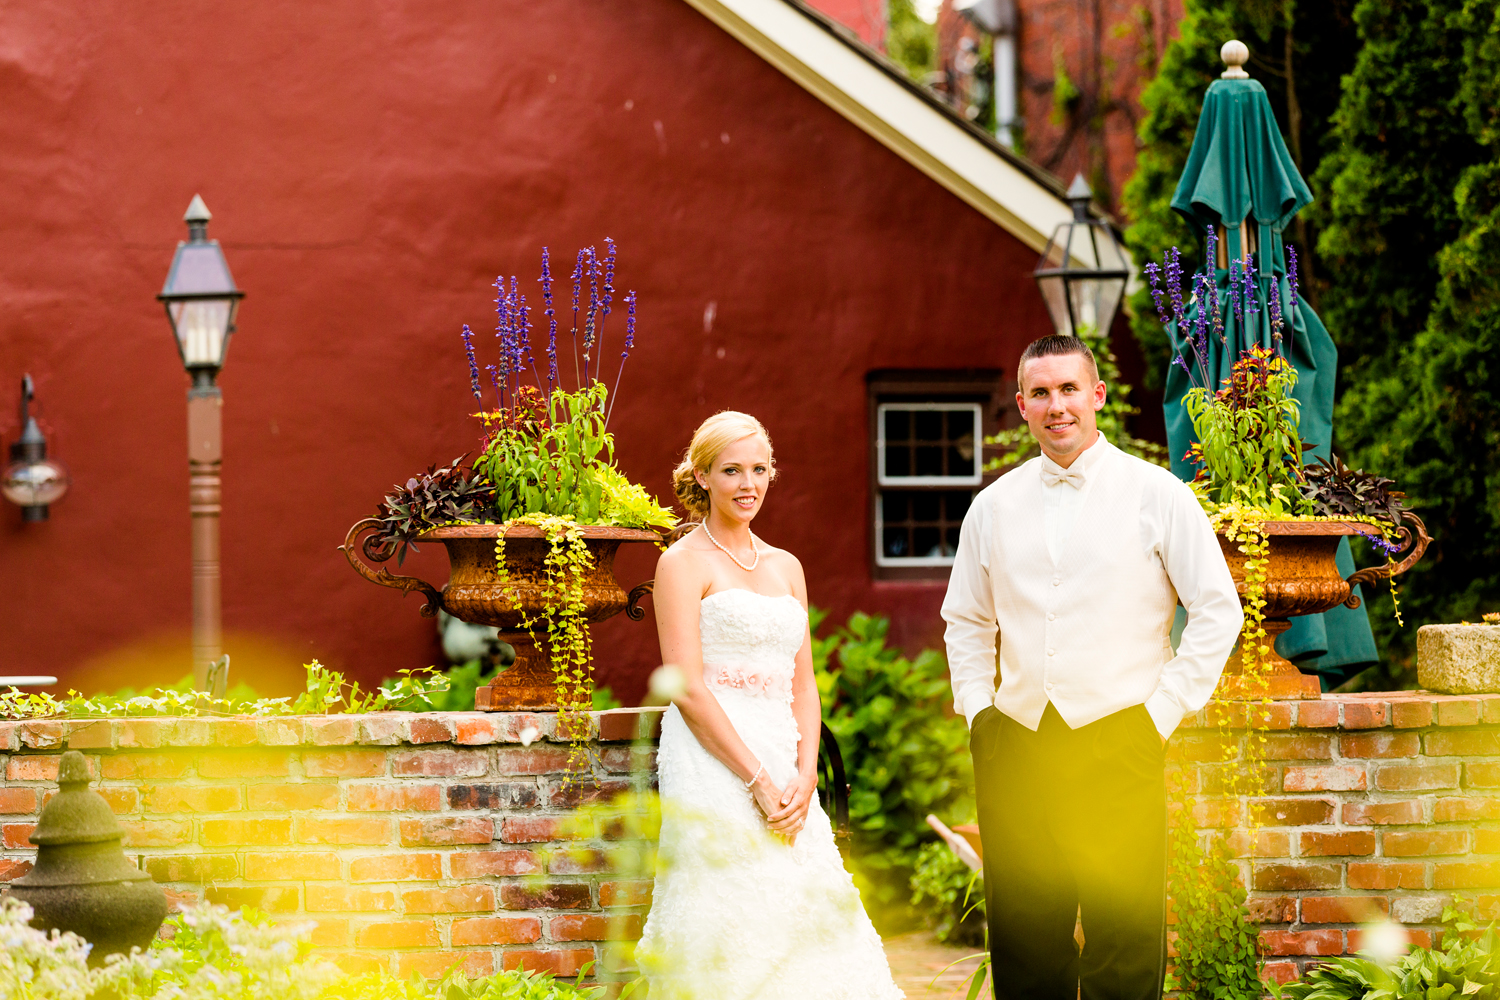 Tin Pan Galley wedding portrait